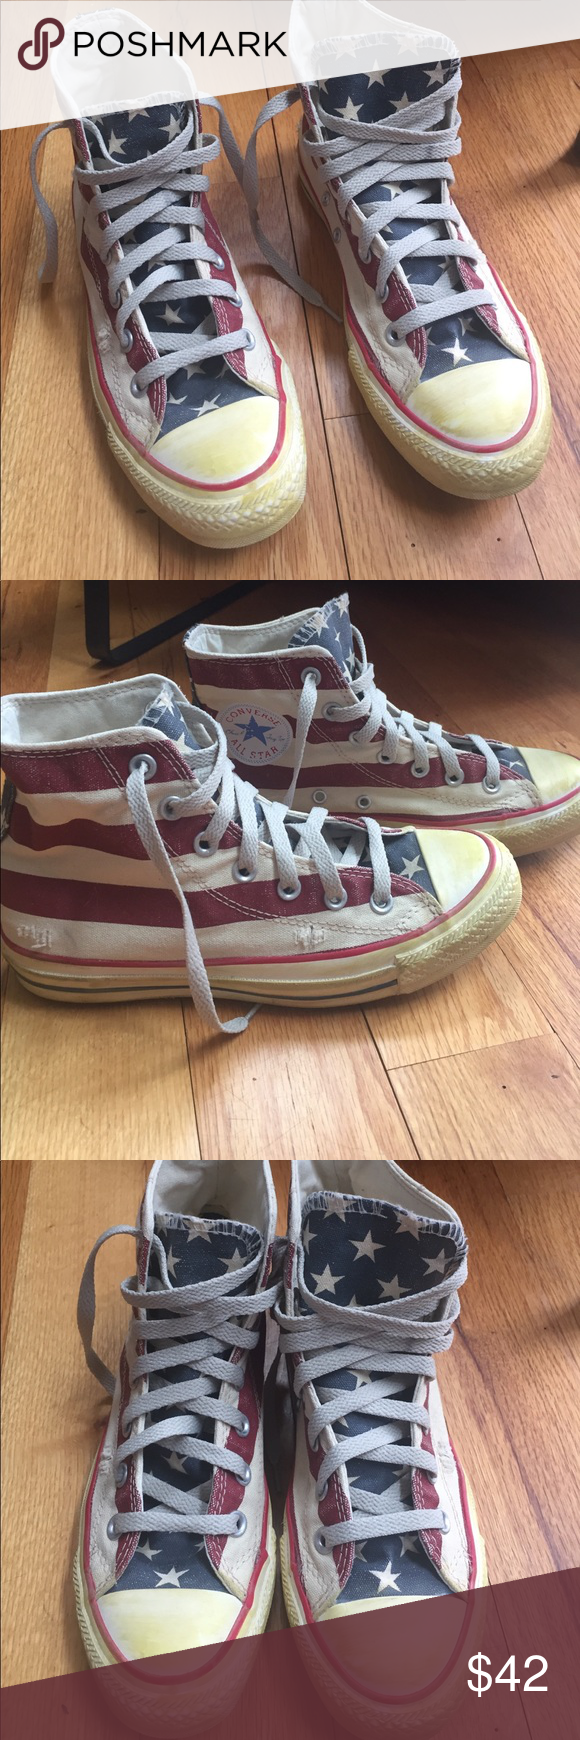 85b907d04058 Converse vintage American flag star stripes 7 Pre owned pair of Converse  chuck taylor American flag